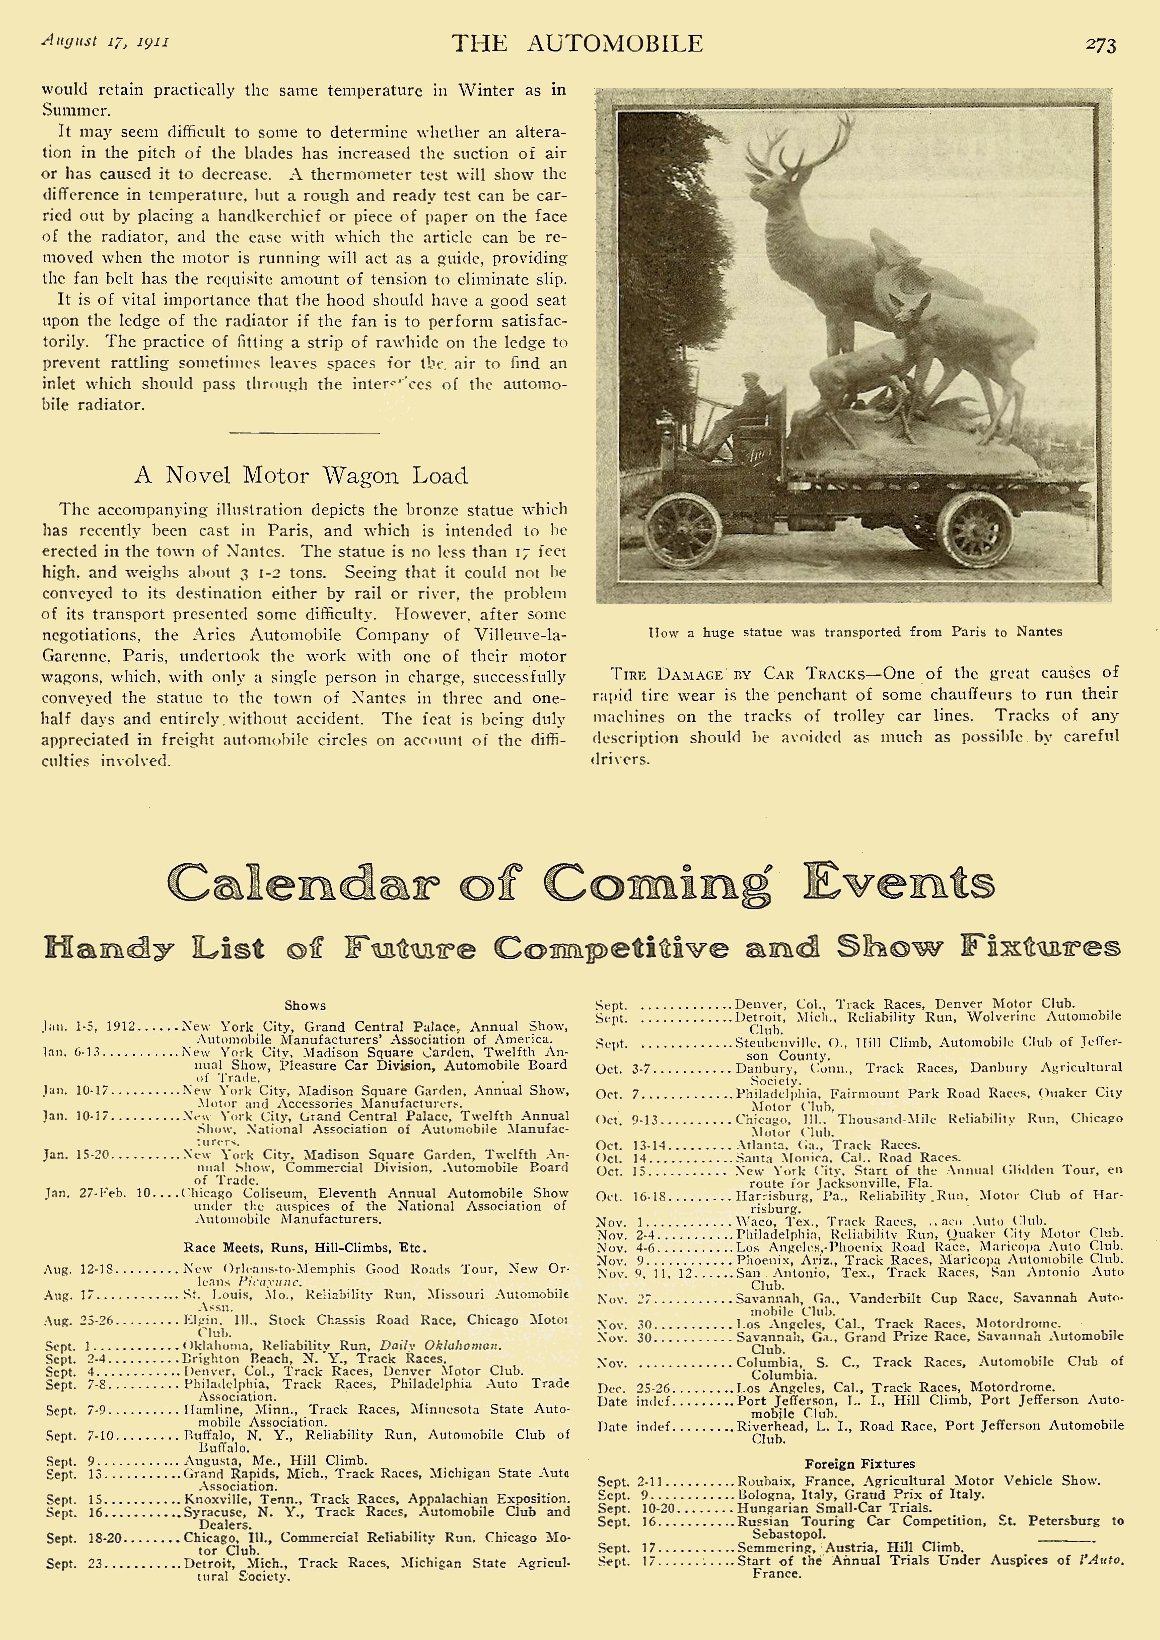 """1911 8 17 """"A Novel Motor Wagon Load"""" THE AUTOMOBILE Vol. 25 No. 7 August 17, 1911 9″x12″ page 273"""